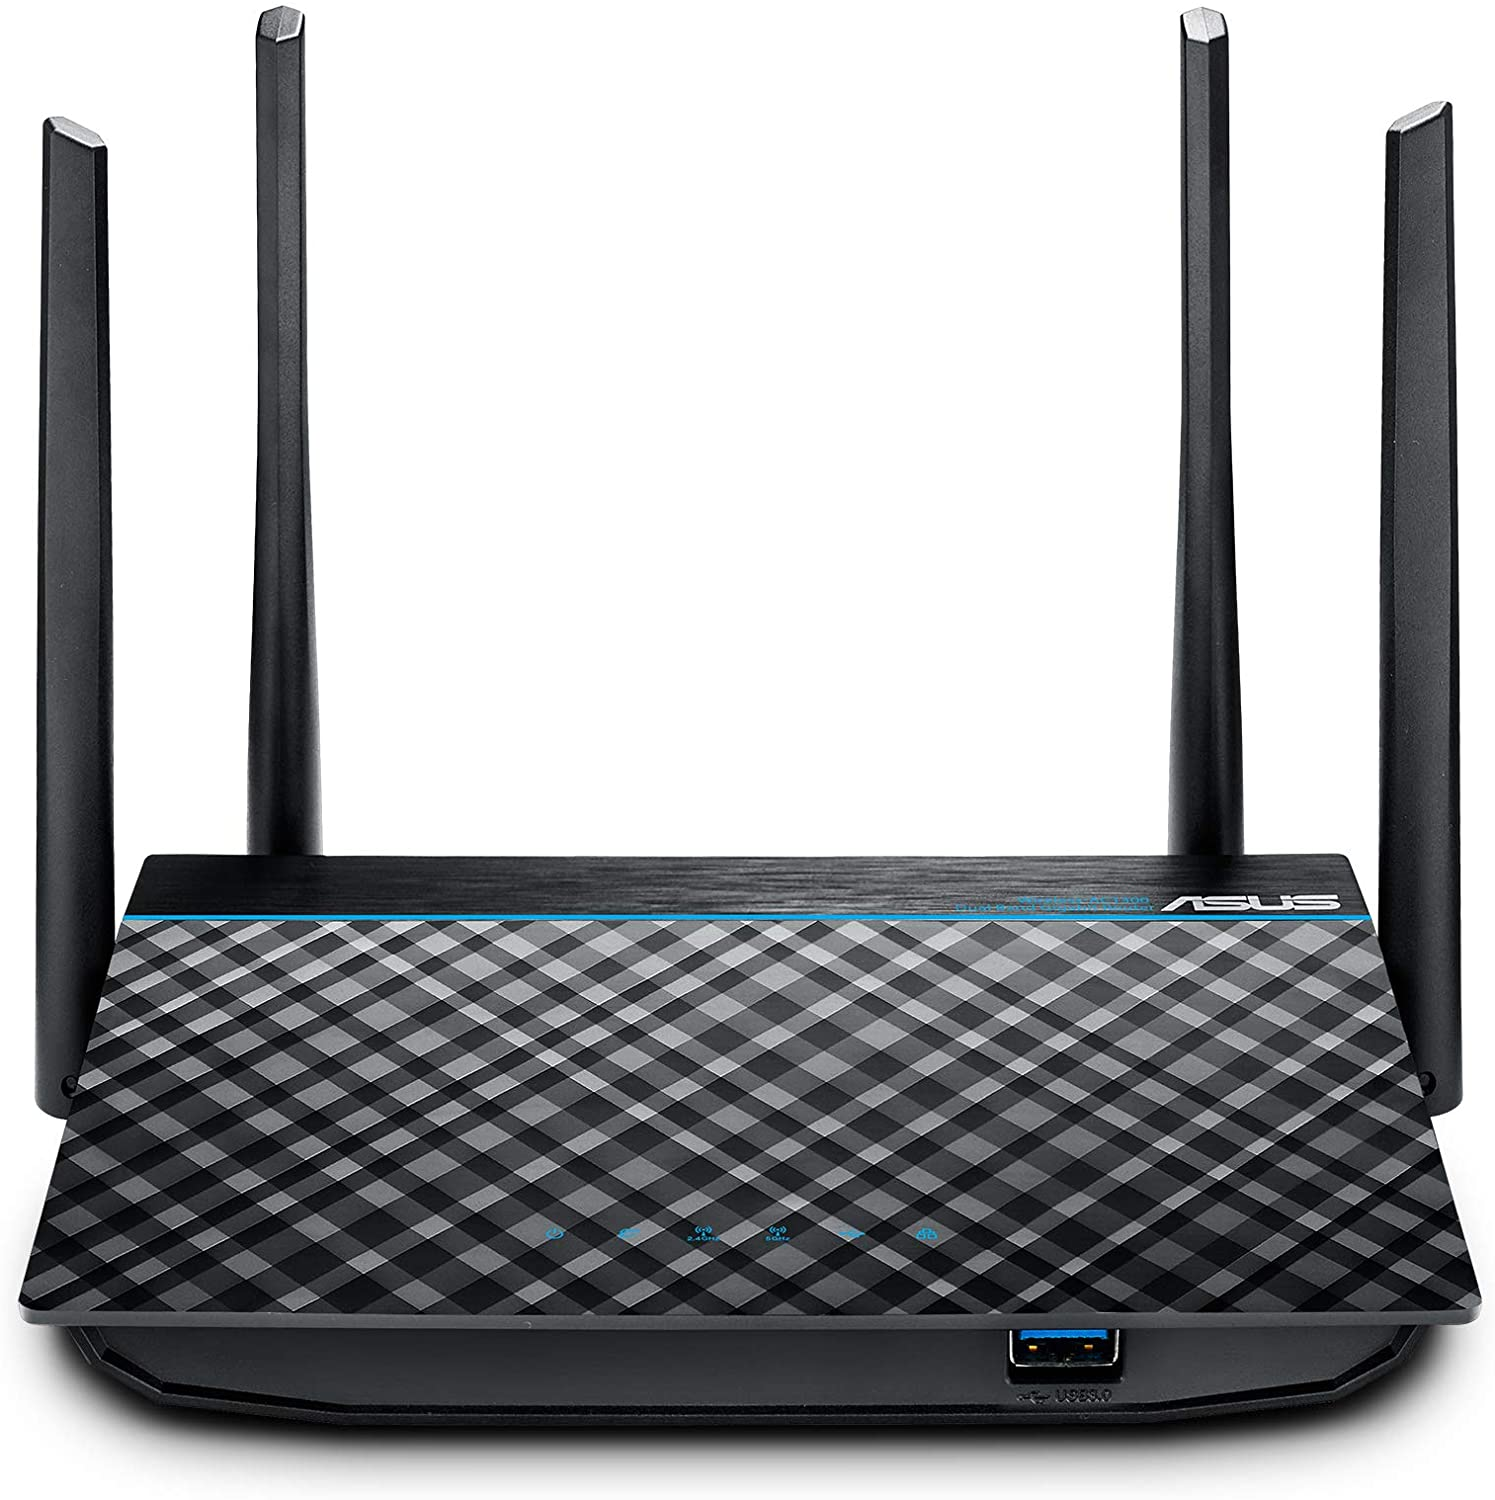 9 Best Wireless Routers Under $100 in 2021 [Value For Money]